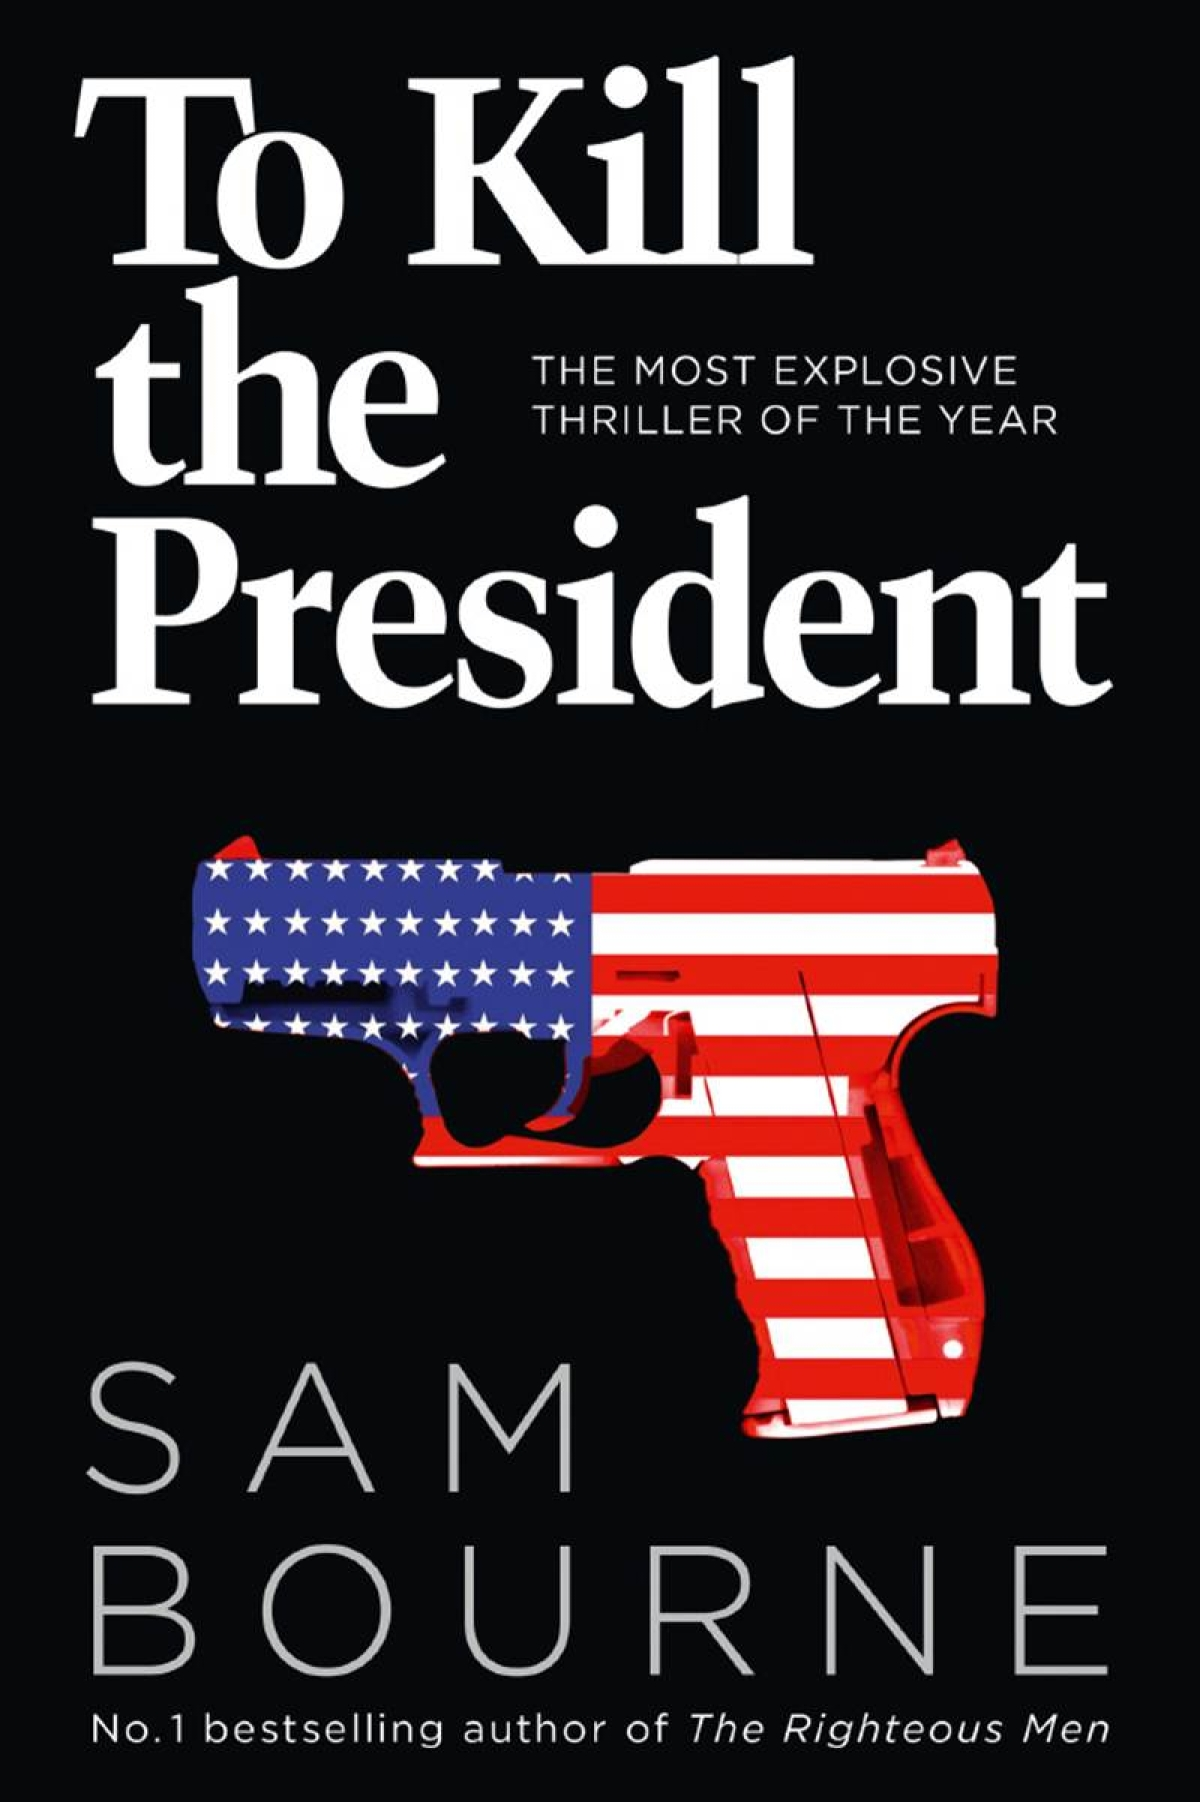 To Kill the President: Review